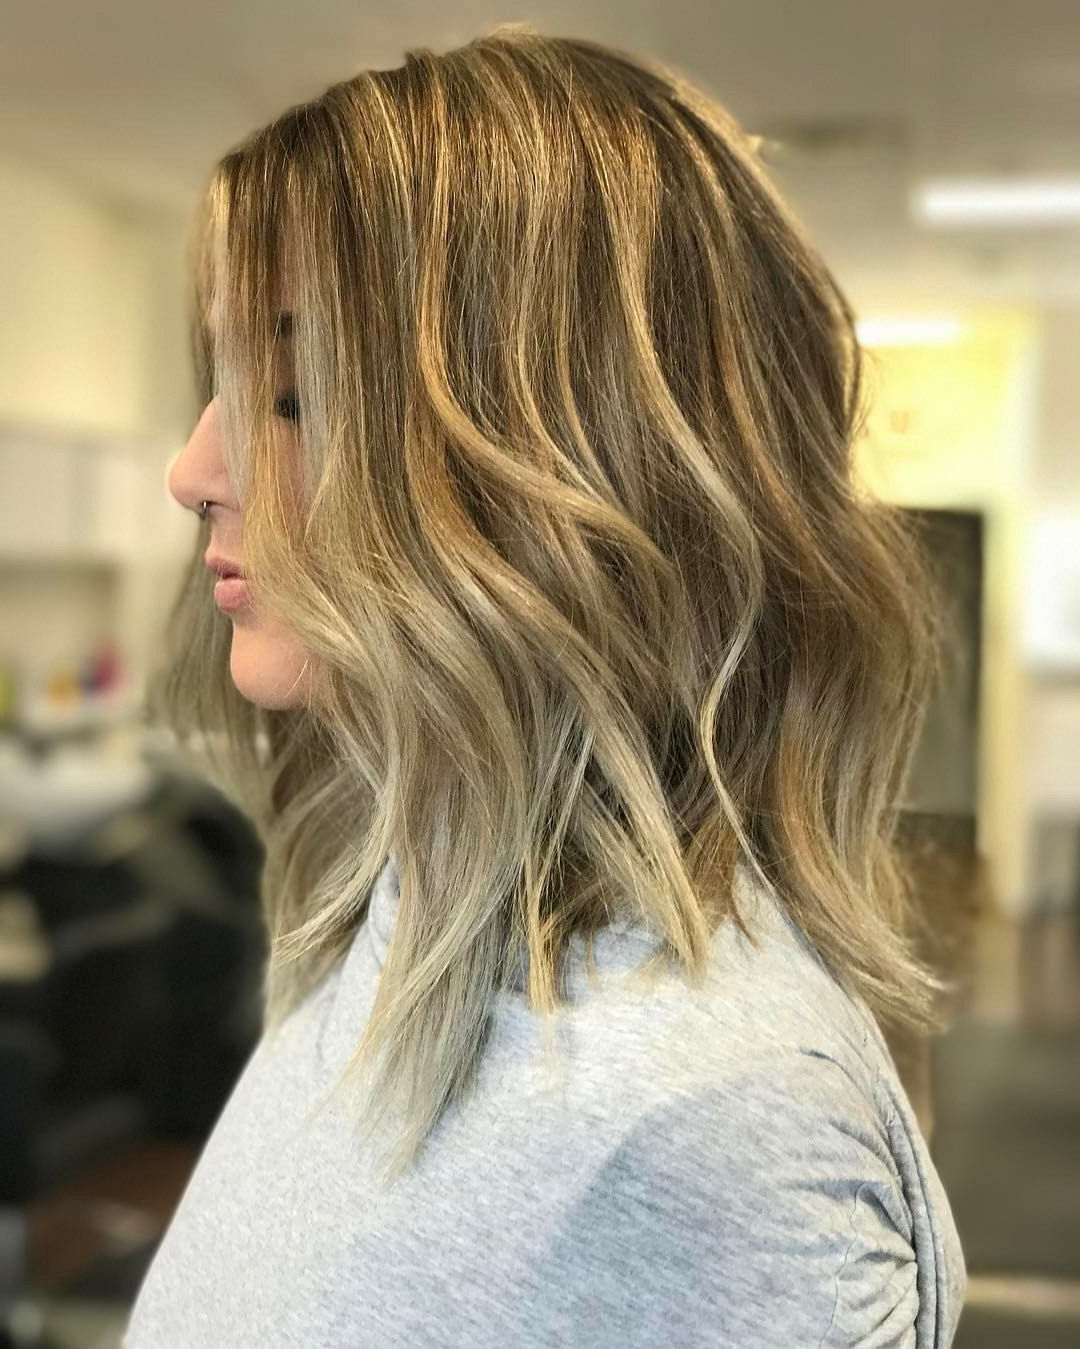 Tousled Beach Wave Style | Some Of Our Work | Pinterest | Beach Waves In Tousled Beach Bob Hairstyles (View 17 of 20)